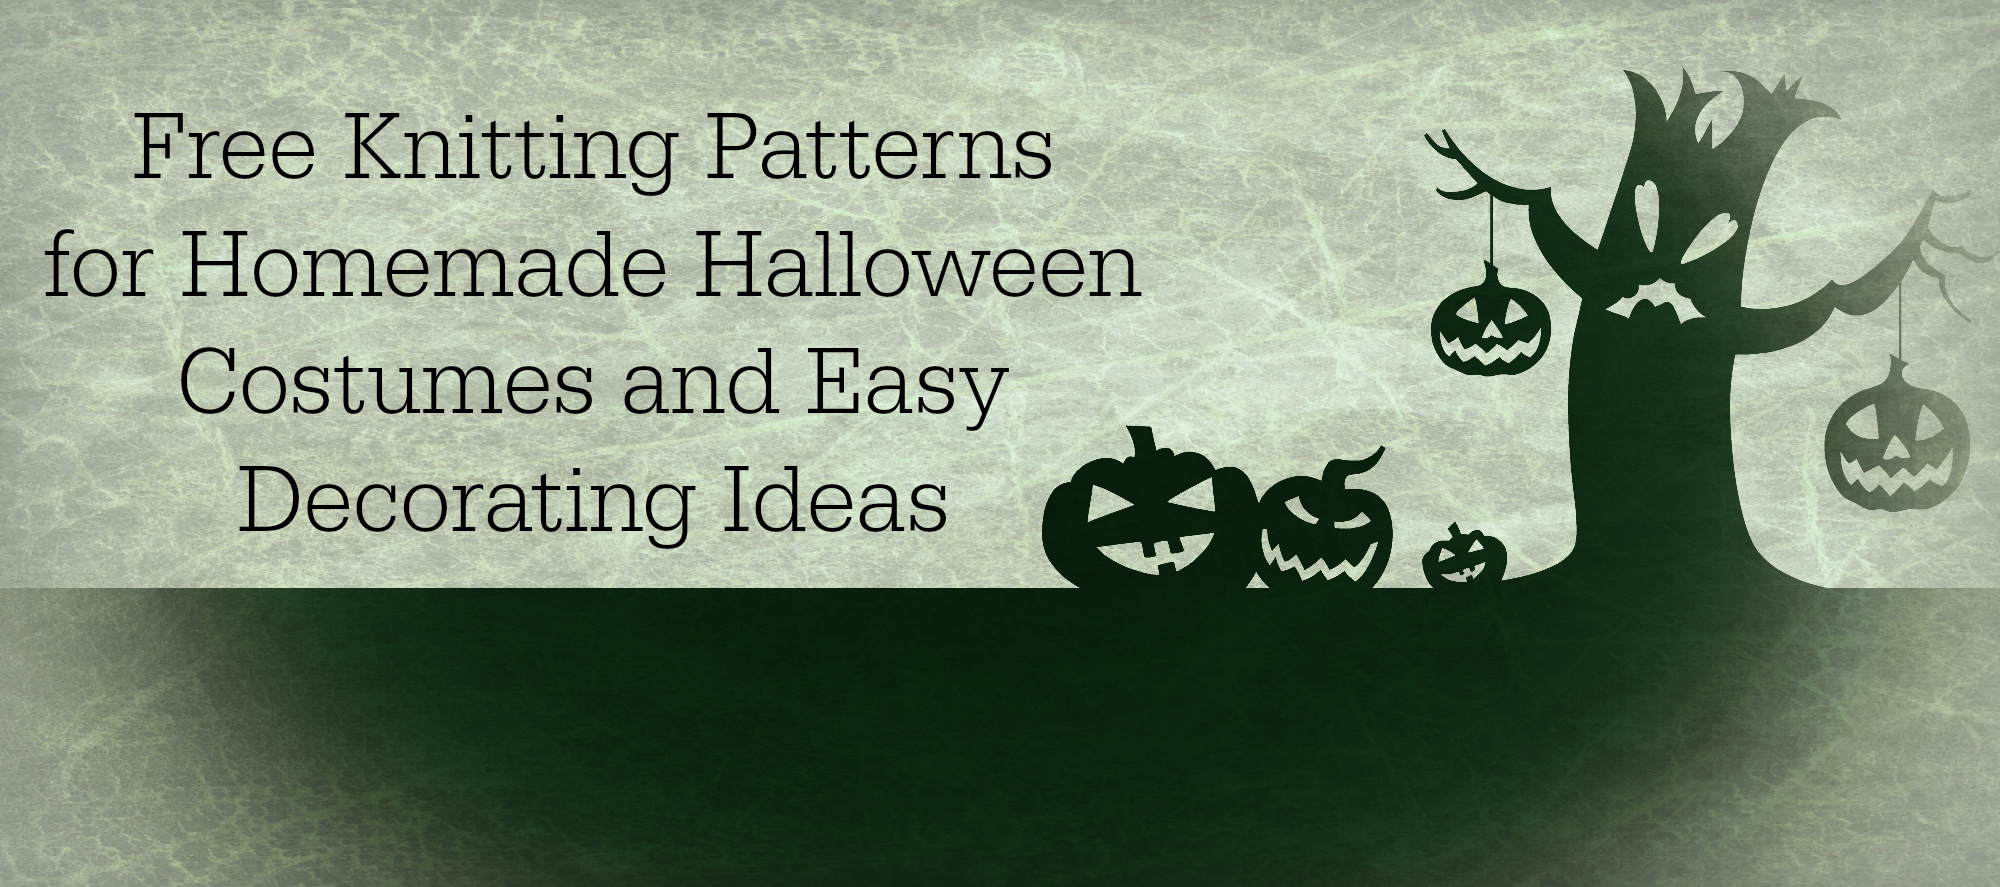 7 Free Knitting Patterns for Homemade Halloween Costumes and Easy ...